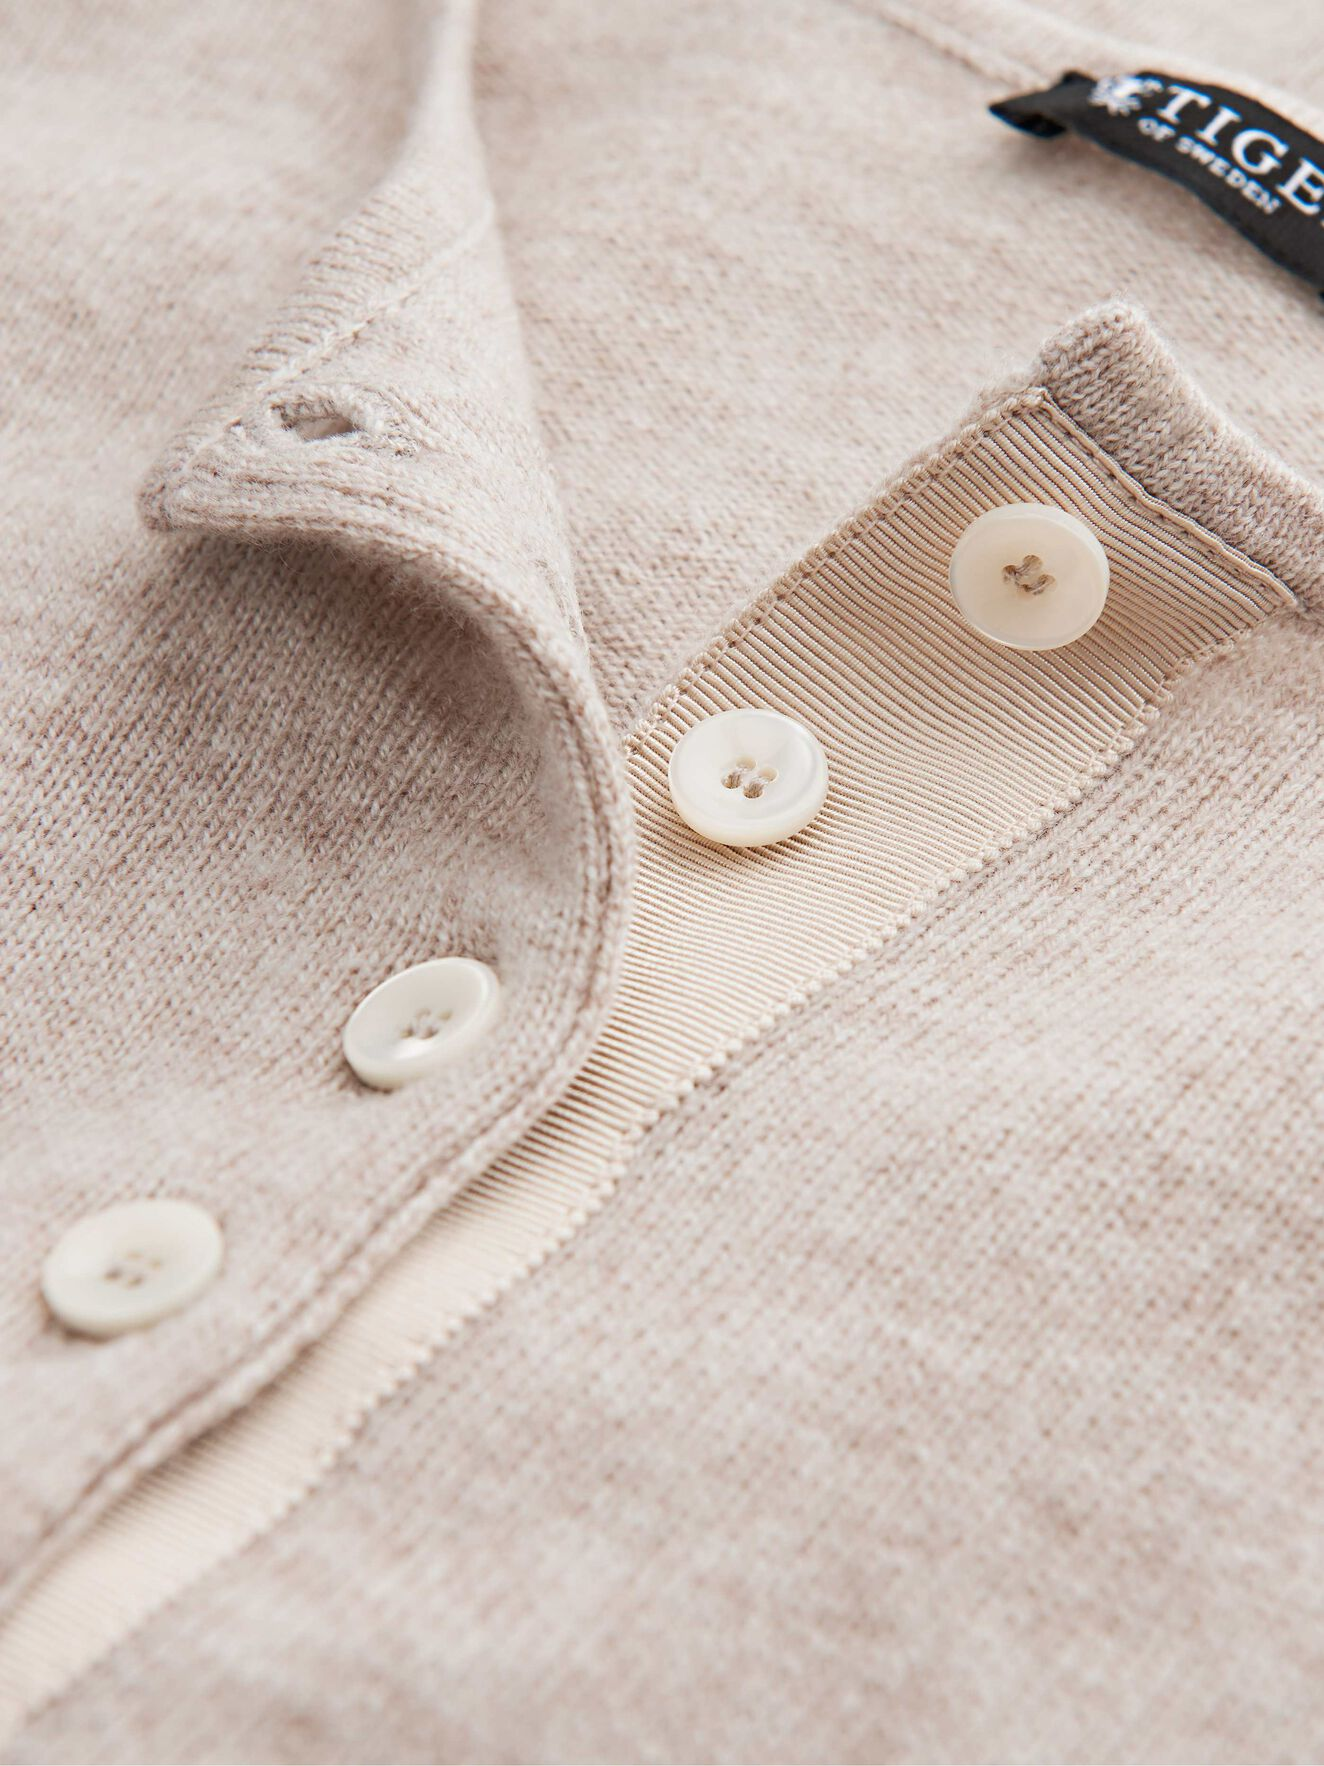 Aktino Cardigan in Roasted Oat from Tiger of Sweden